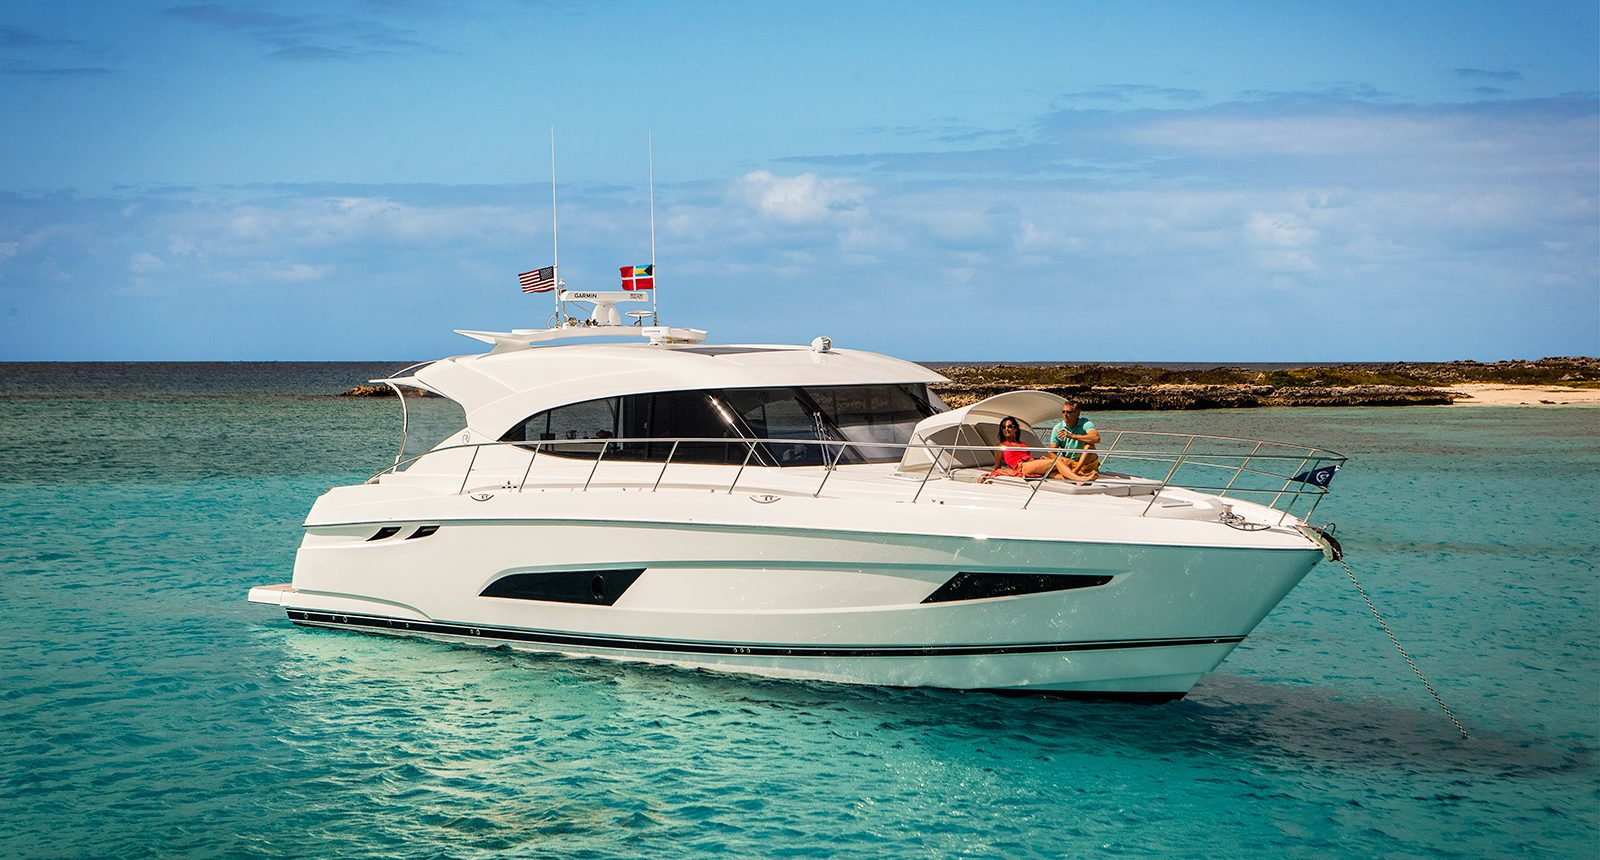 Riviera 5400 Sport Yacht - anchored